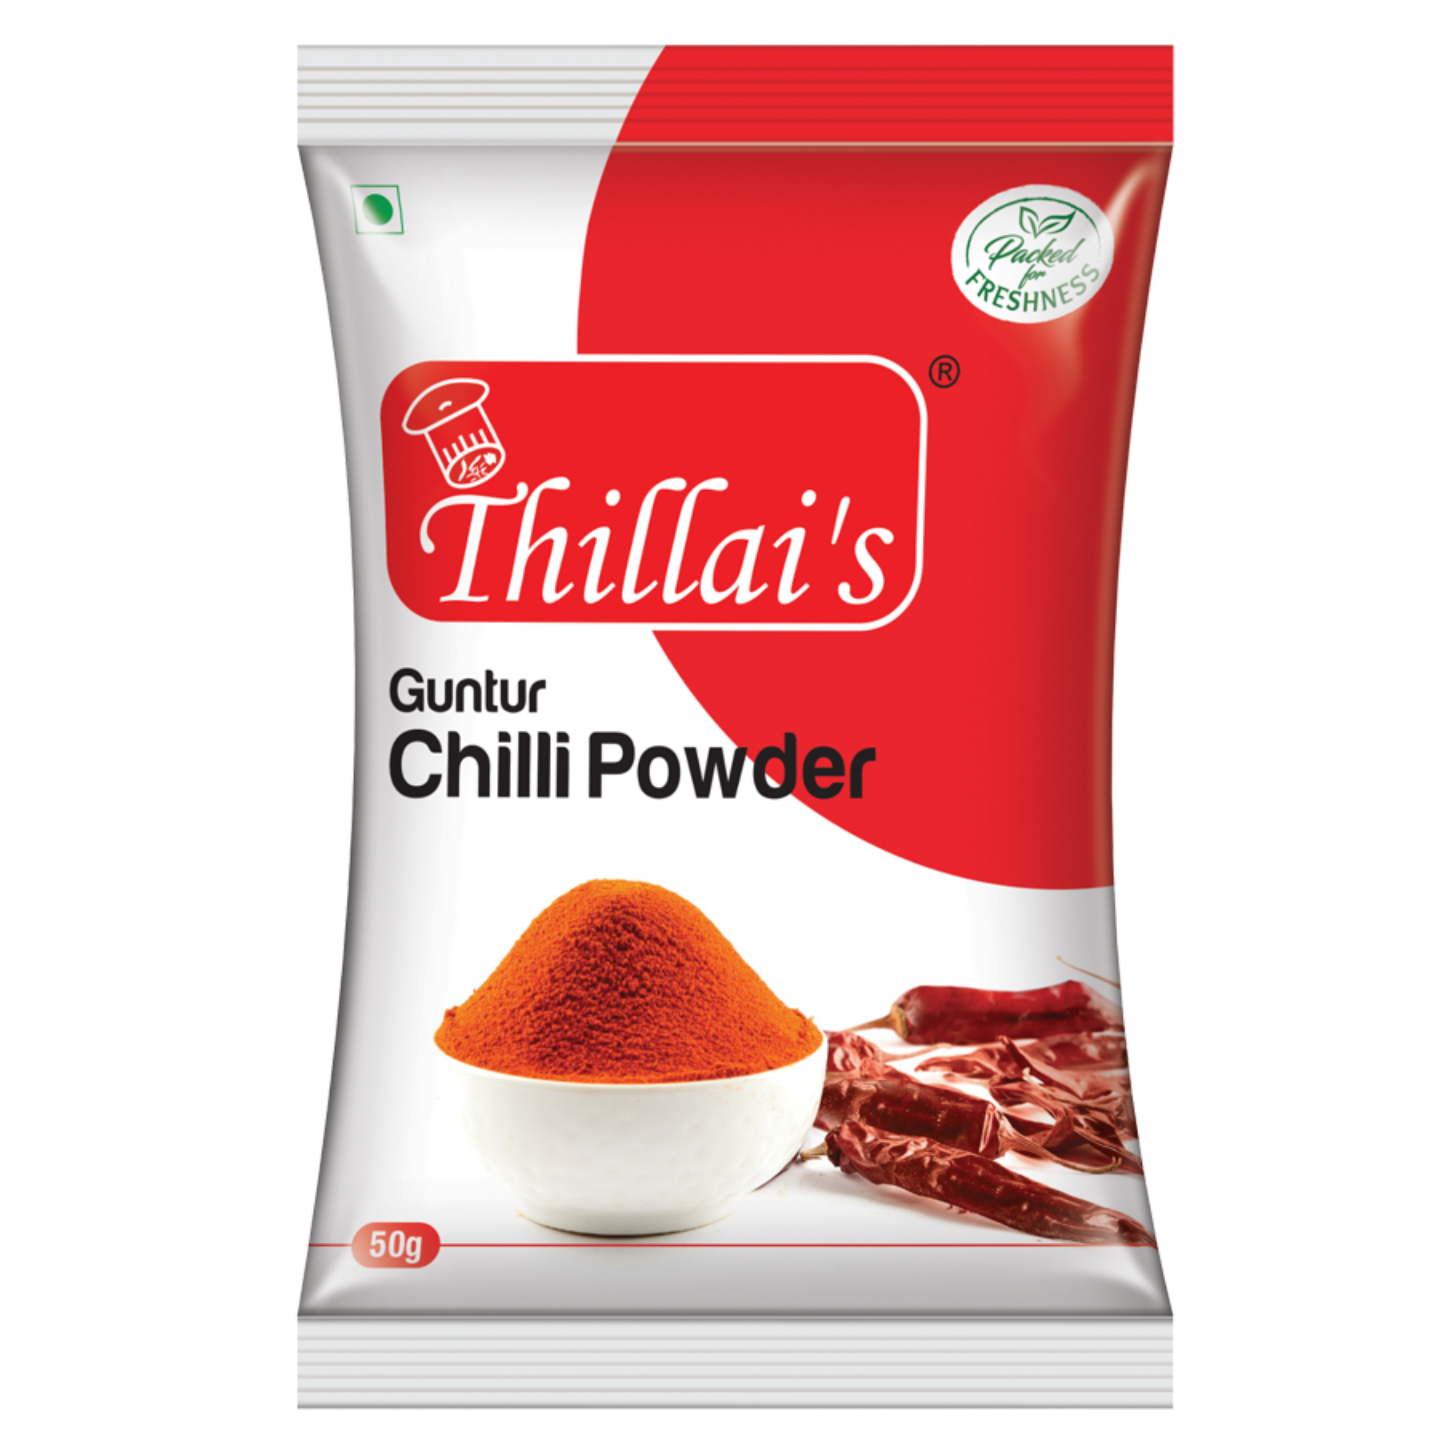 Chiili Powder from Thillai's-50g (Excl GST)